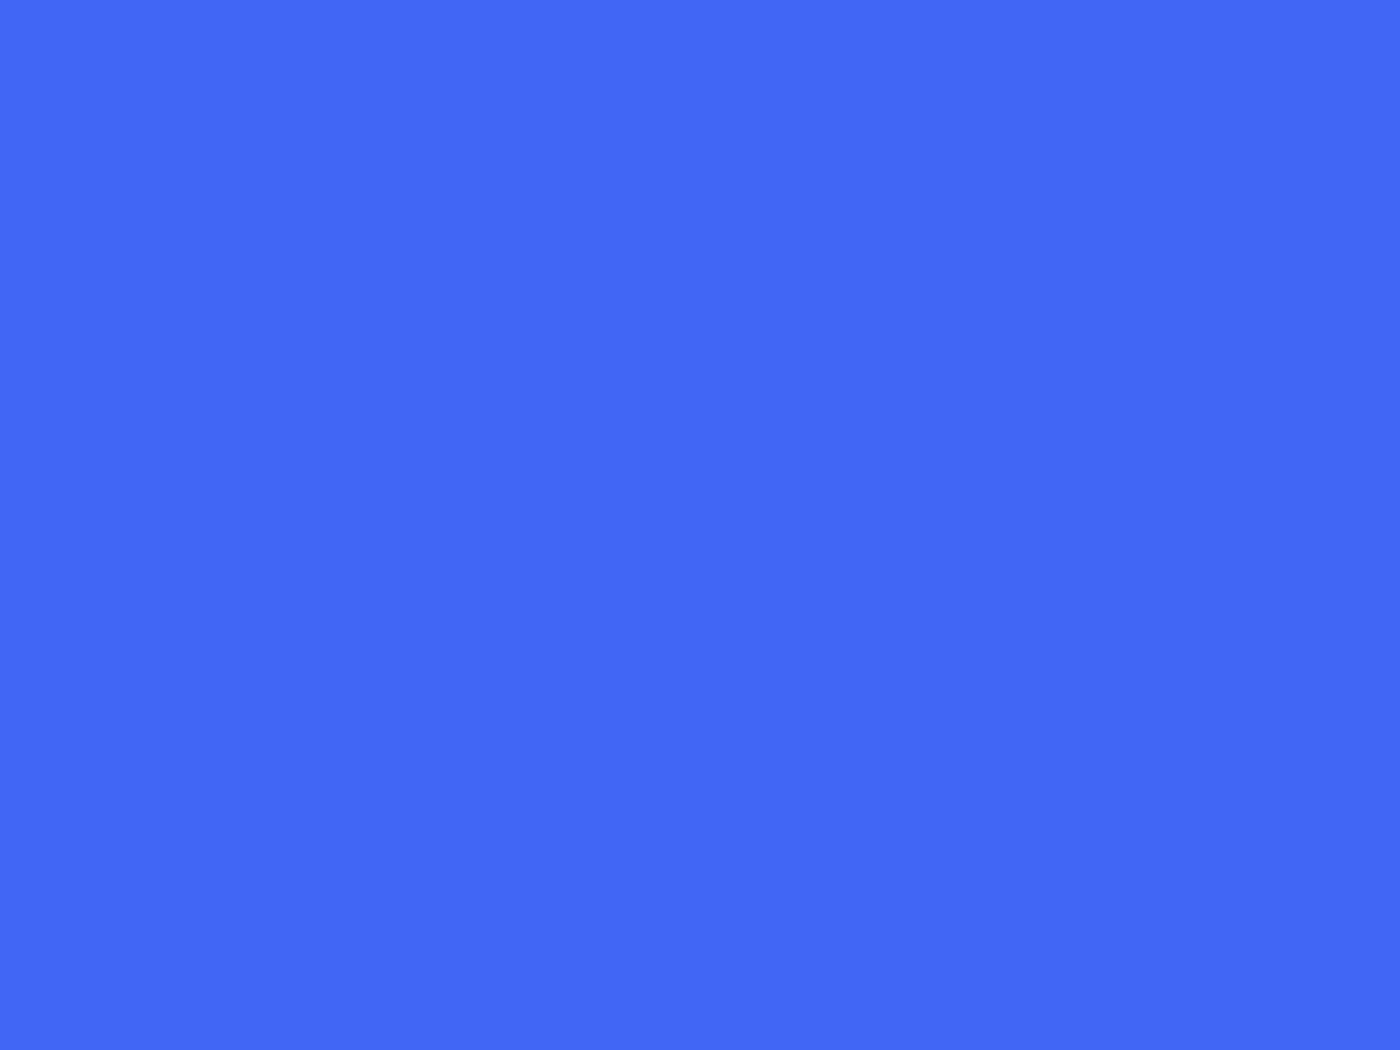 1400x1050 Ultramarine Blue Solid Color Background